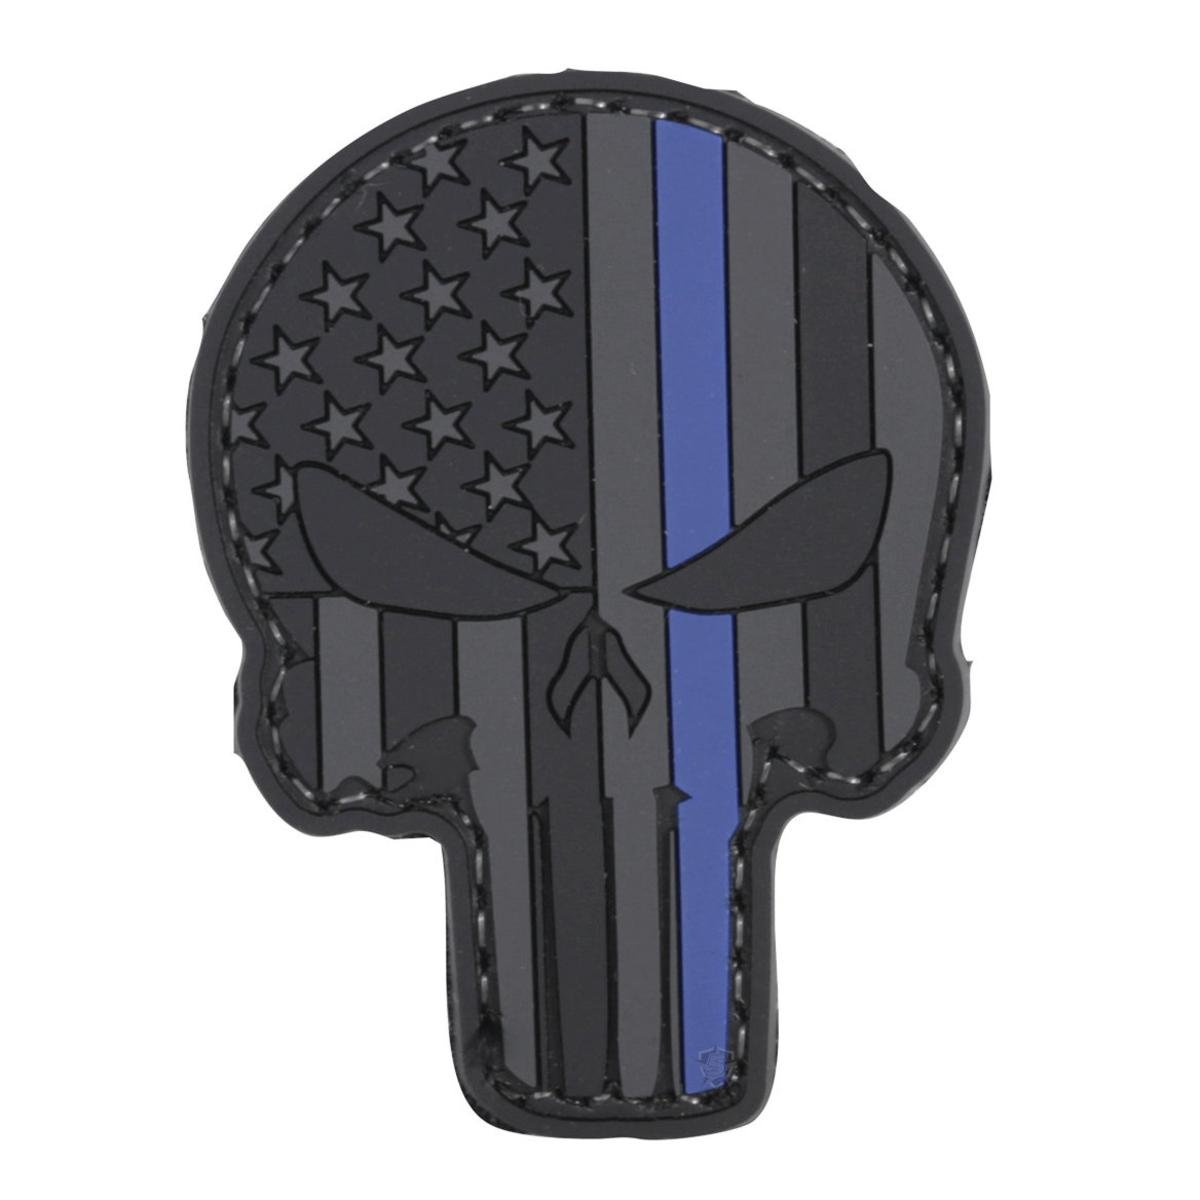 5ive Star Gear LE Thin Blue Line Punisher Skull PVC Morale Patch, 1.75 x 2.25 1.75 x 2.25 Atlanco 6654